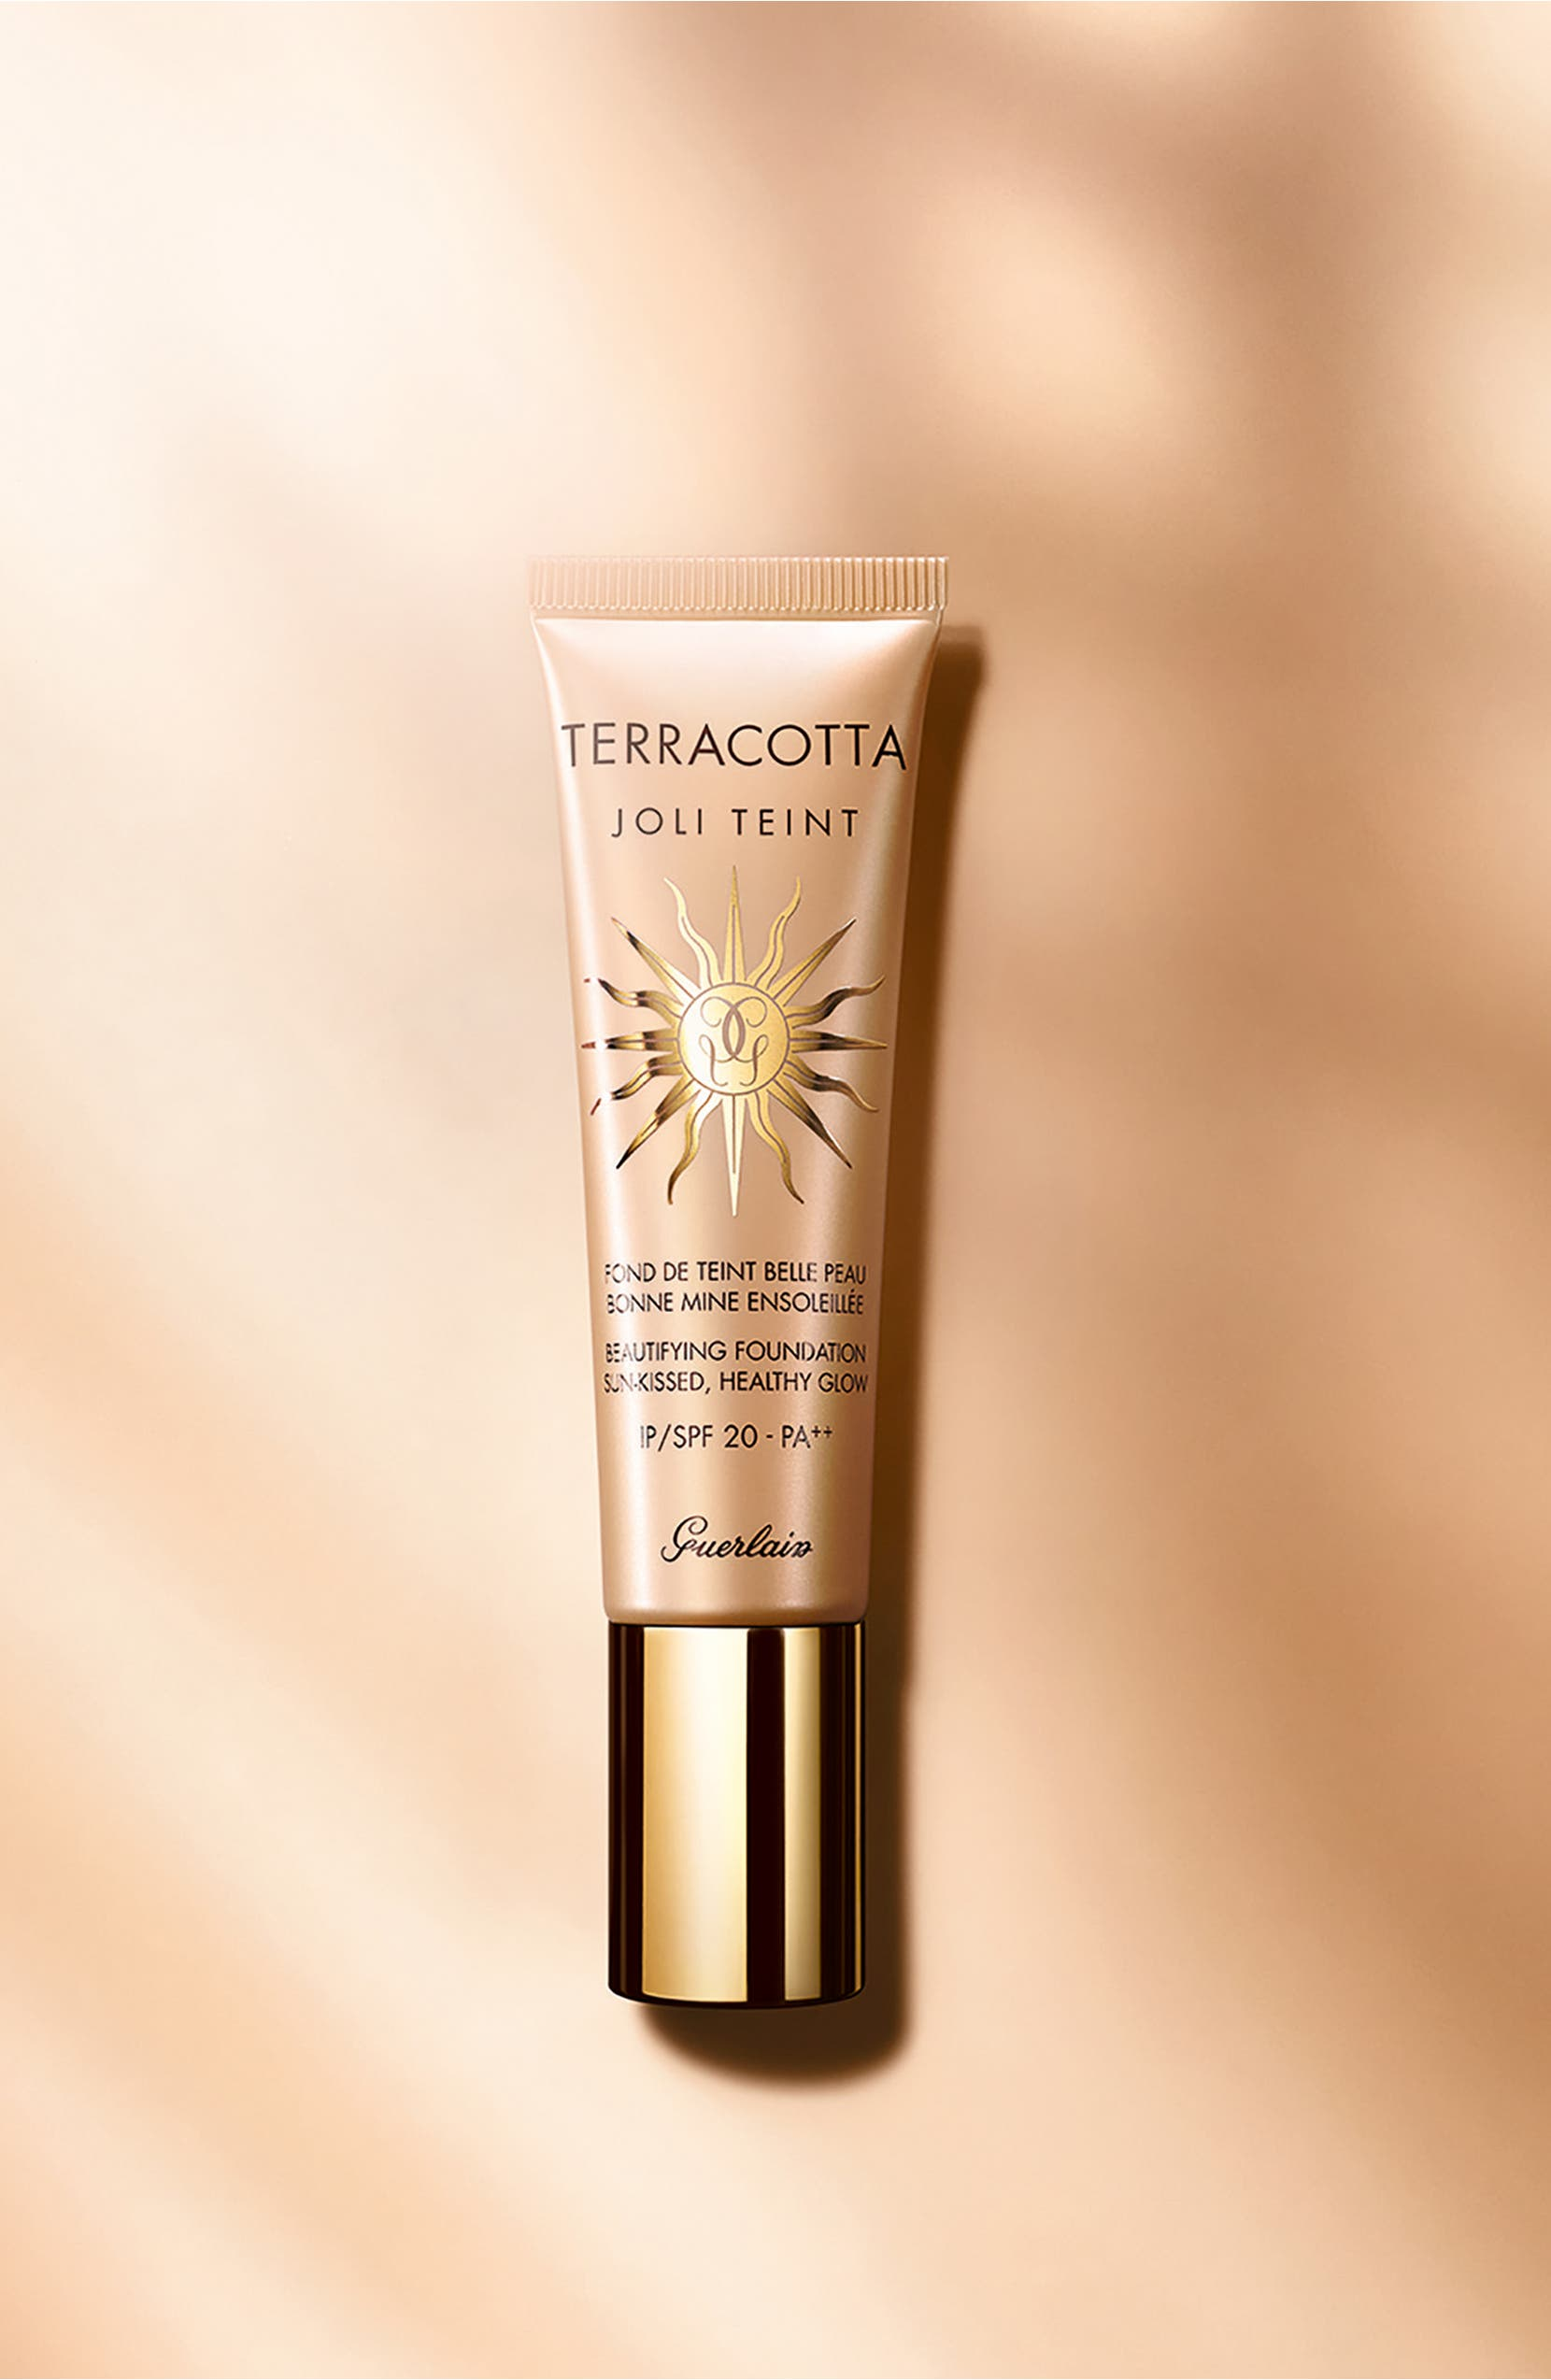 Guerlain Terracotta Joli Teint Healthy Glow Fluid Foundation Spf 20